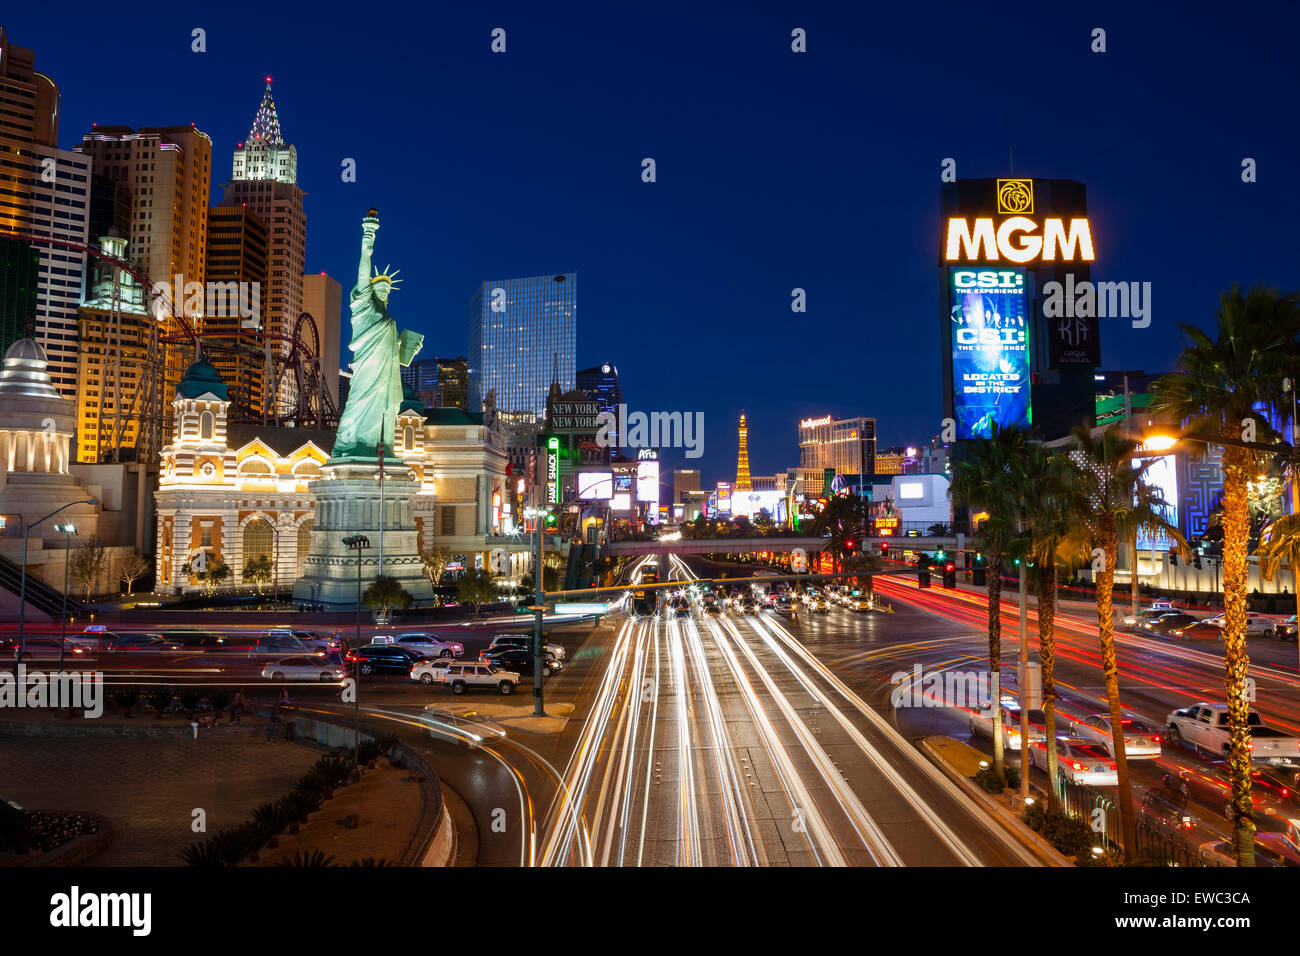 Las Vegas Boulevard 'The Strip' long exposure night shot. View of MGM Grand Hotel and New York New York - Stock Image